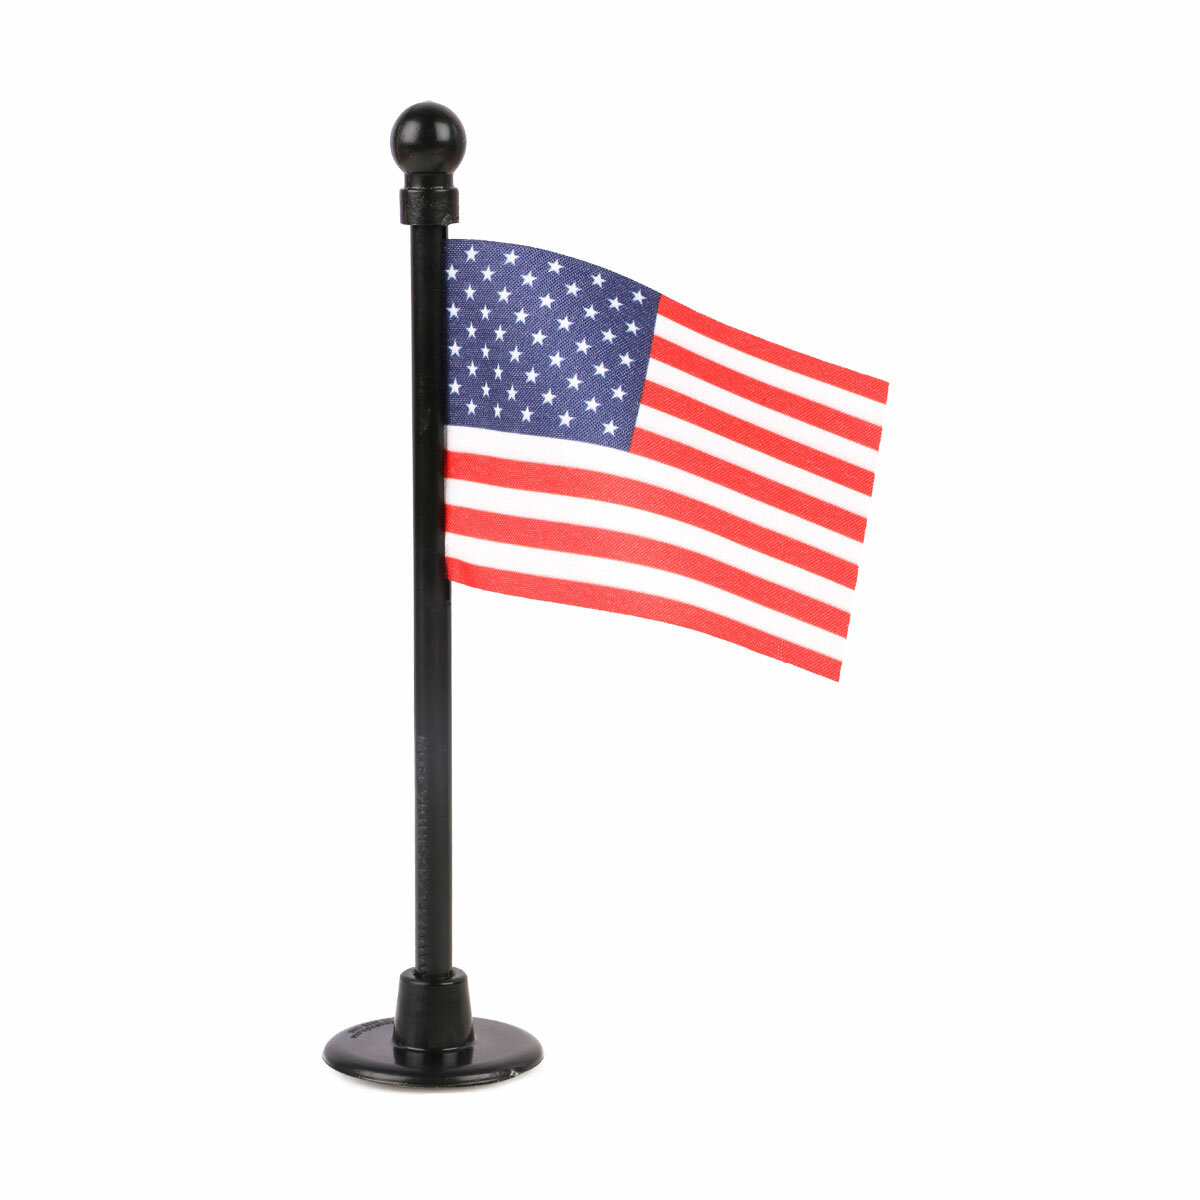 usa car dashboard flag with a black plastic stand / base